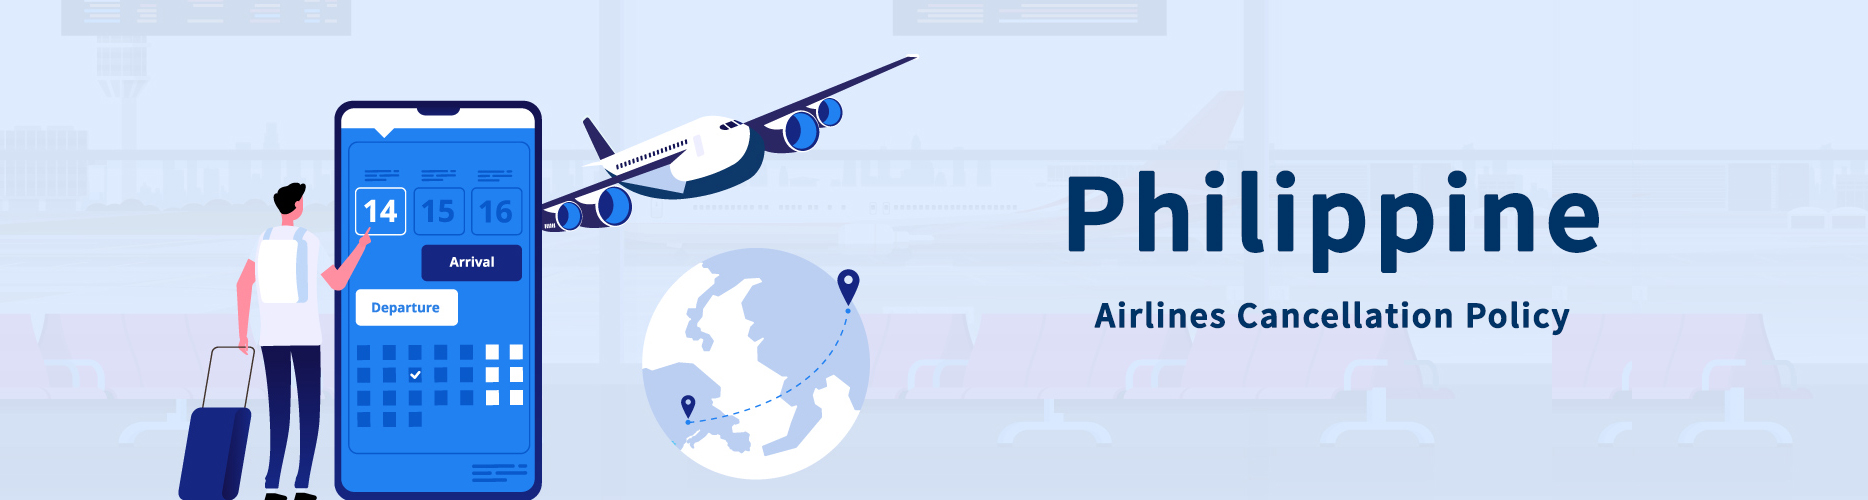 Philippine-Airlines-Cancellation-Policy